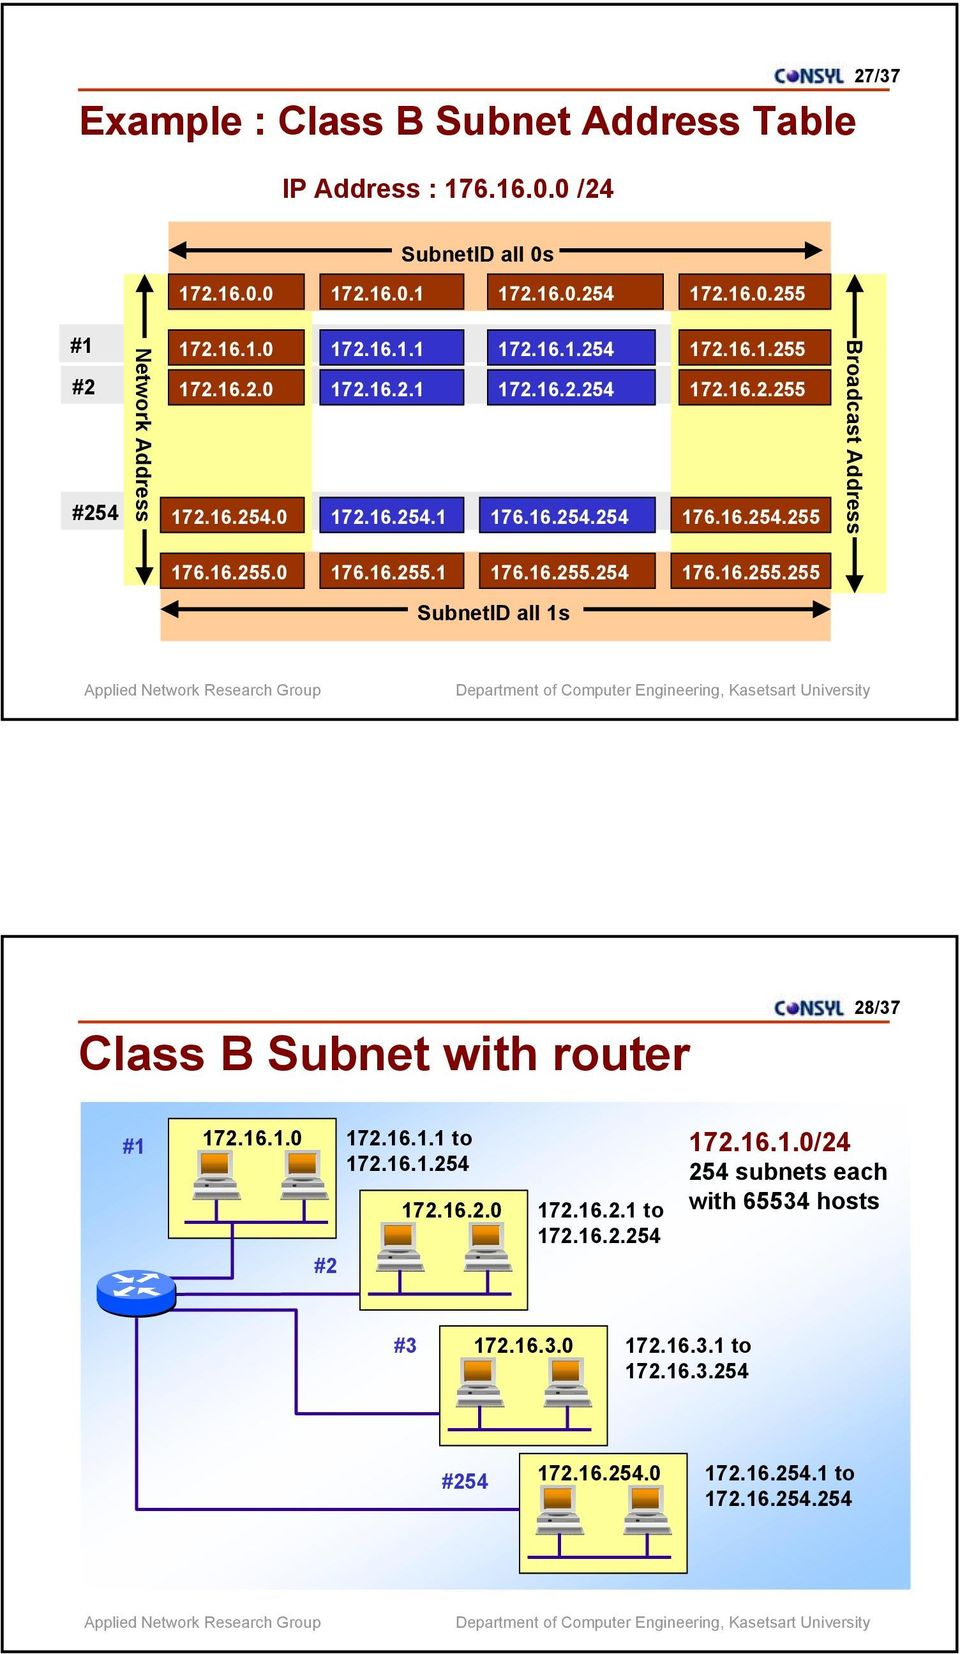 16.255.0 176.16.255.1 176.16.255.254 176.16.255.255 SubnetID all 1s Class B Subnet with router 28/37 #1 172.16.1.0 172.16.1.1 to 172.16.1.254 172.16.2.0 172.16.2.1 to 172.16.2.254 172.16.1.0/24 254 subnets each with 65534 hosts #2 #3 172.